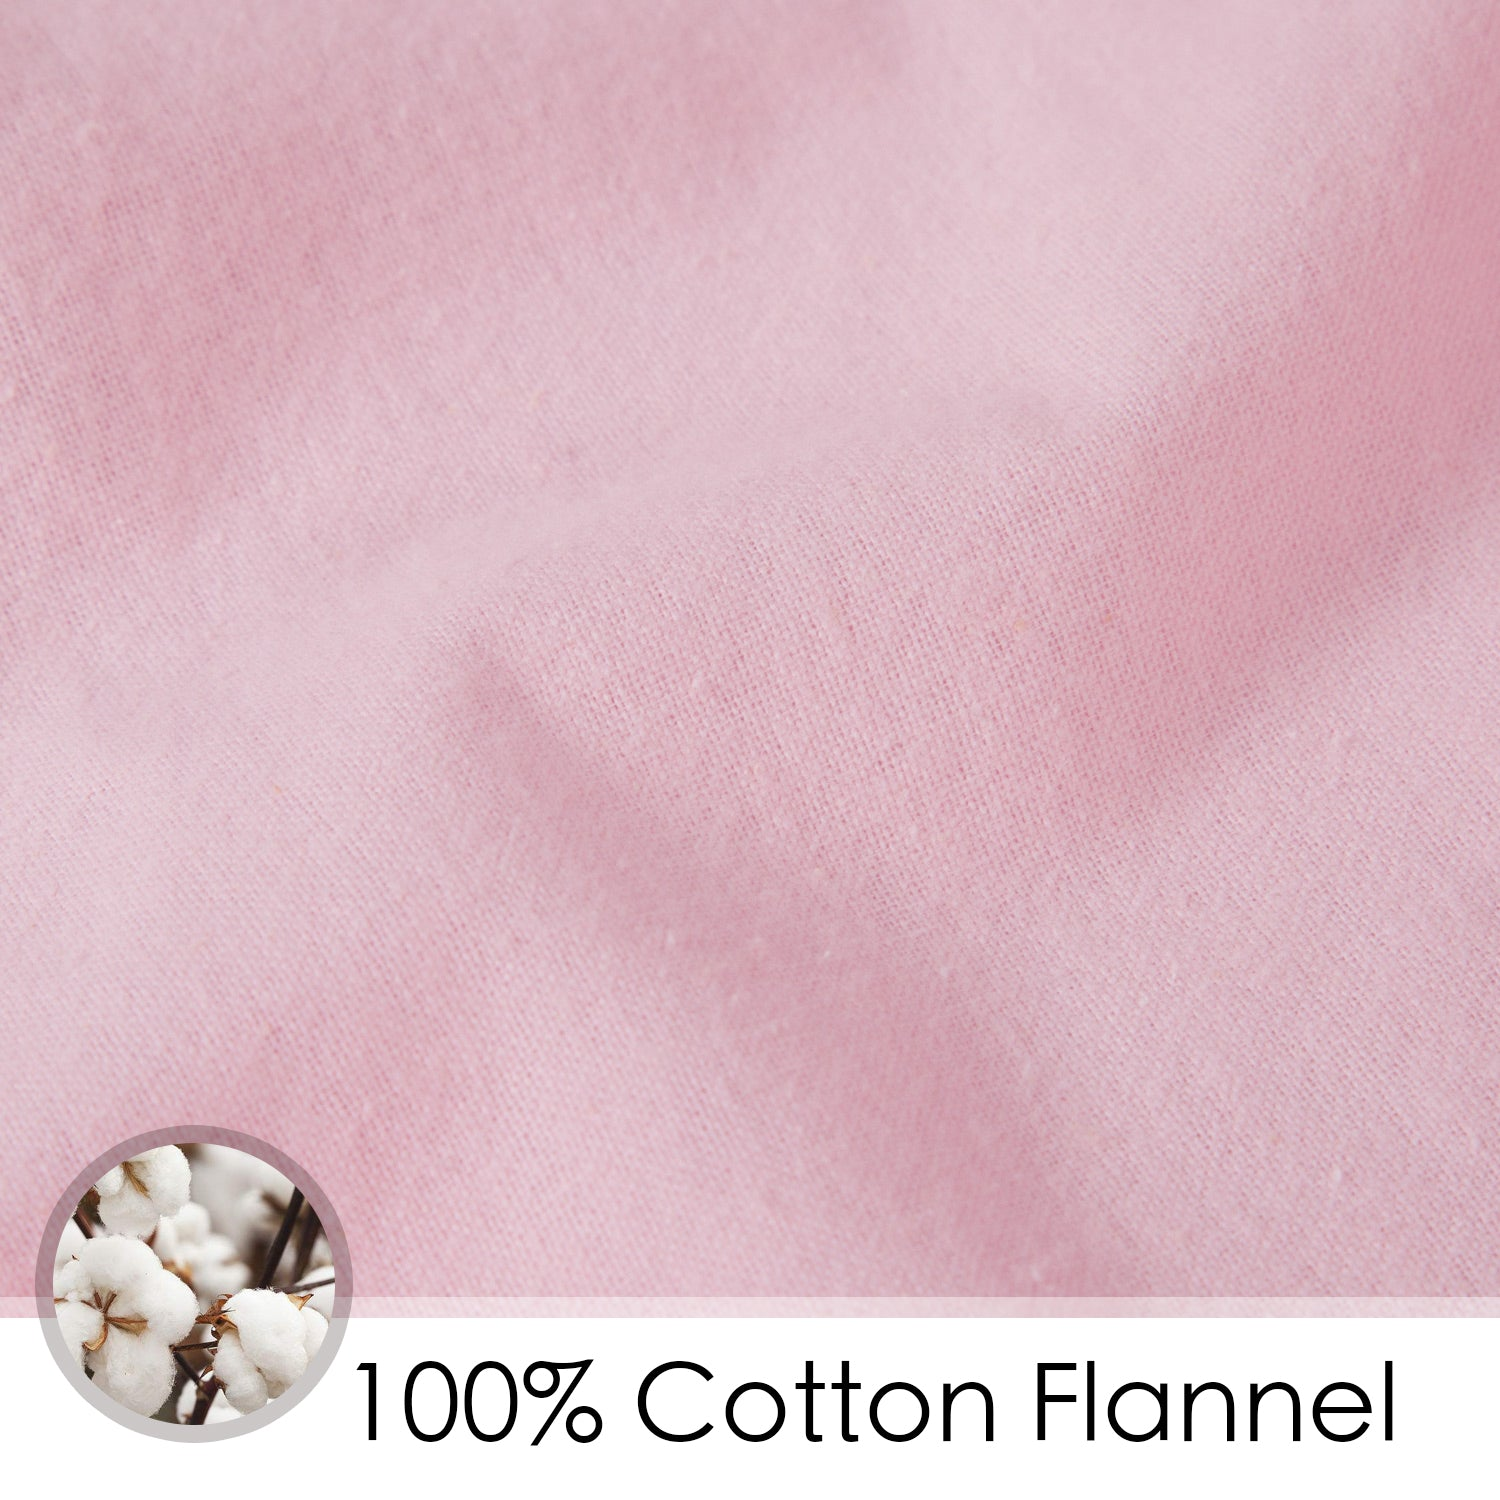 Cotton Flannel Crib Sheet - 4 Colors